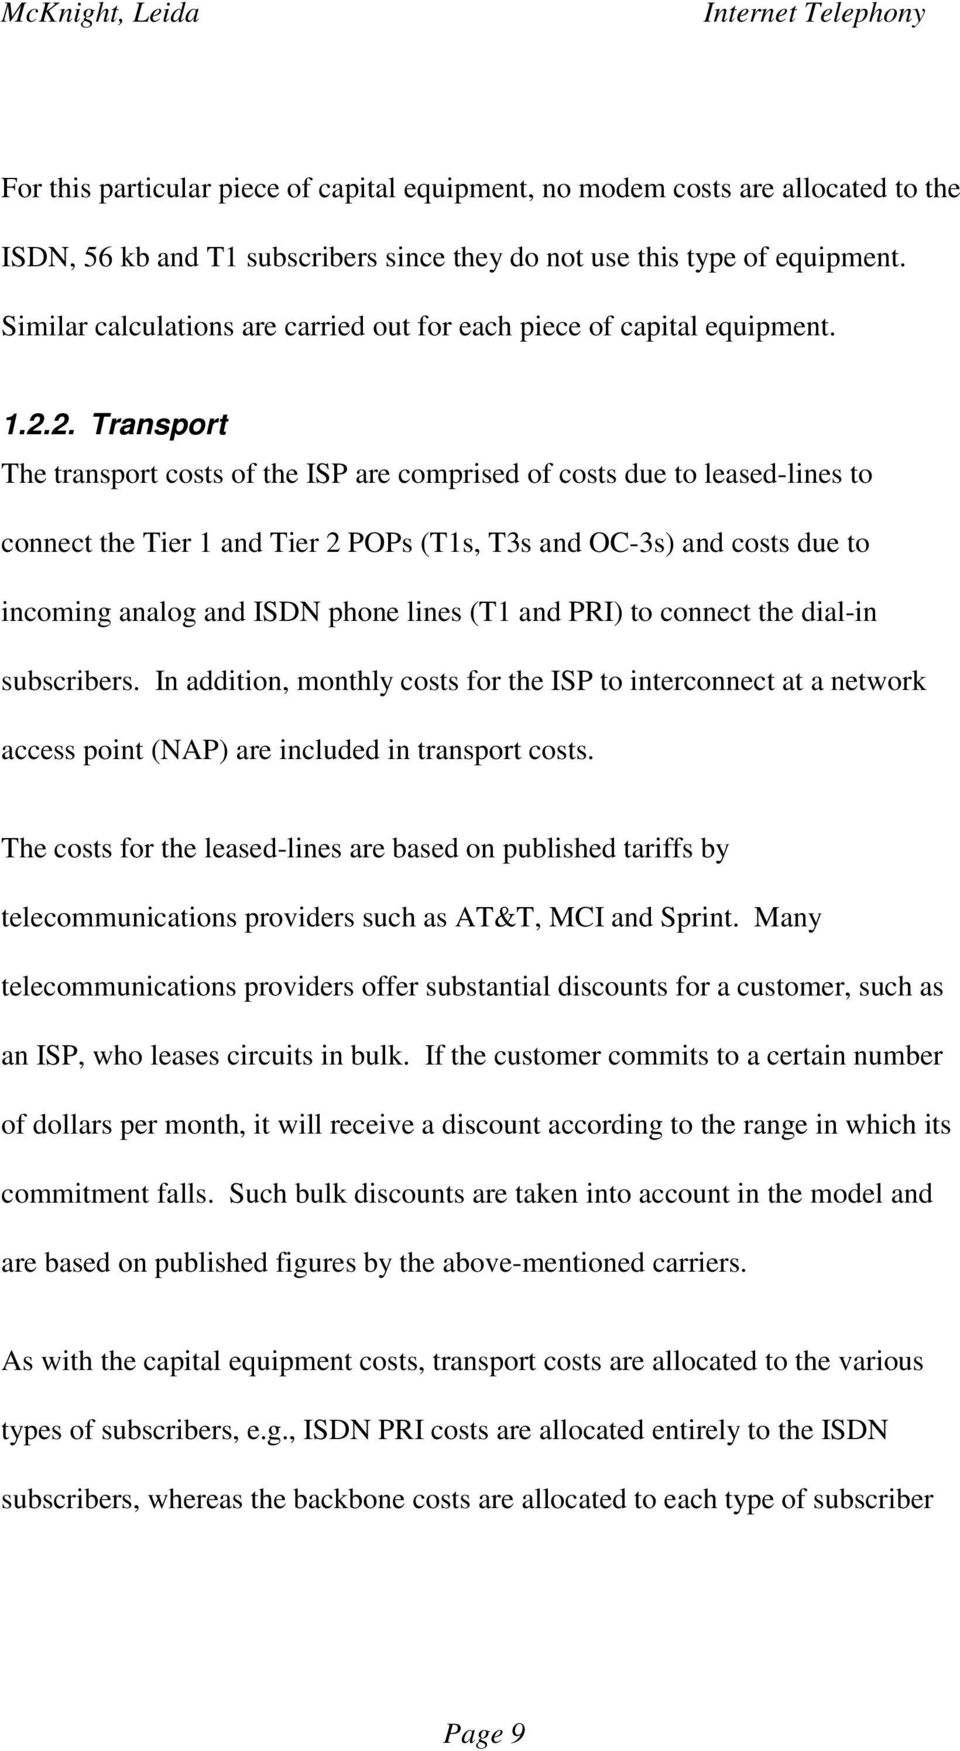 2. Transport The transport costs of the ISP are comprised of costs due to leased-lines to connect the Tier 1 and Tier 2 POPs (T1s, T3s and OC-3s) and costs due to incoming analog and ISDN phone lines